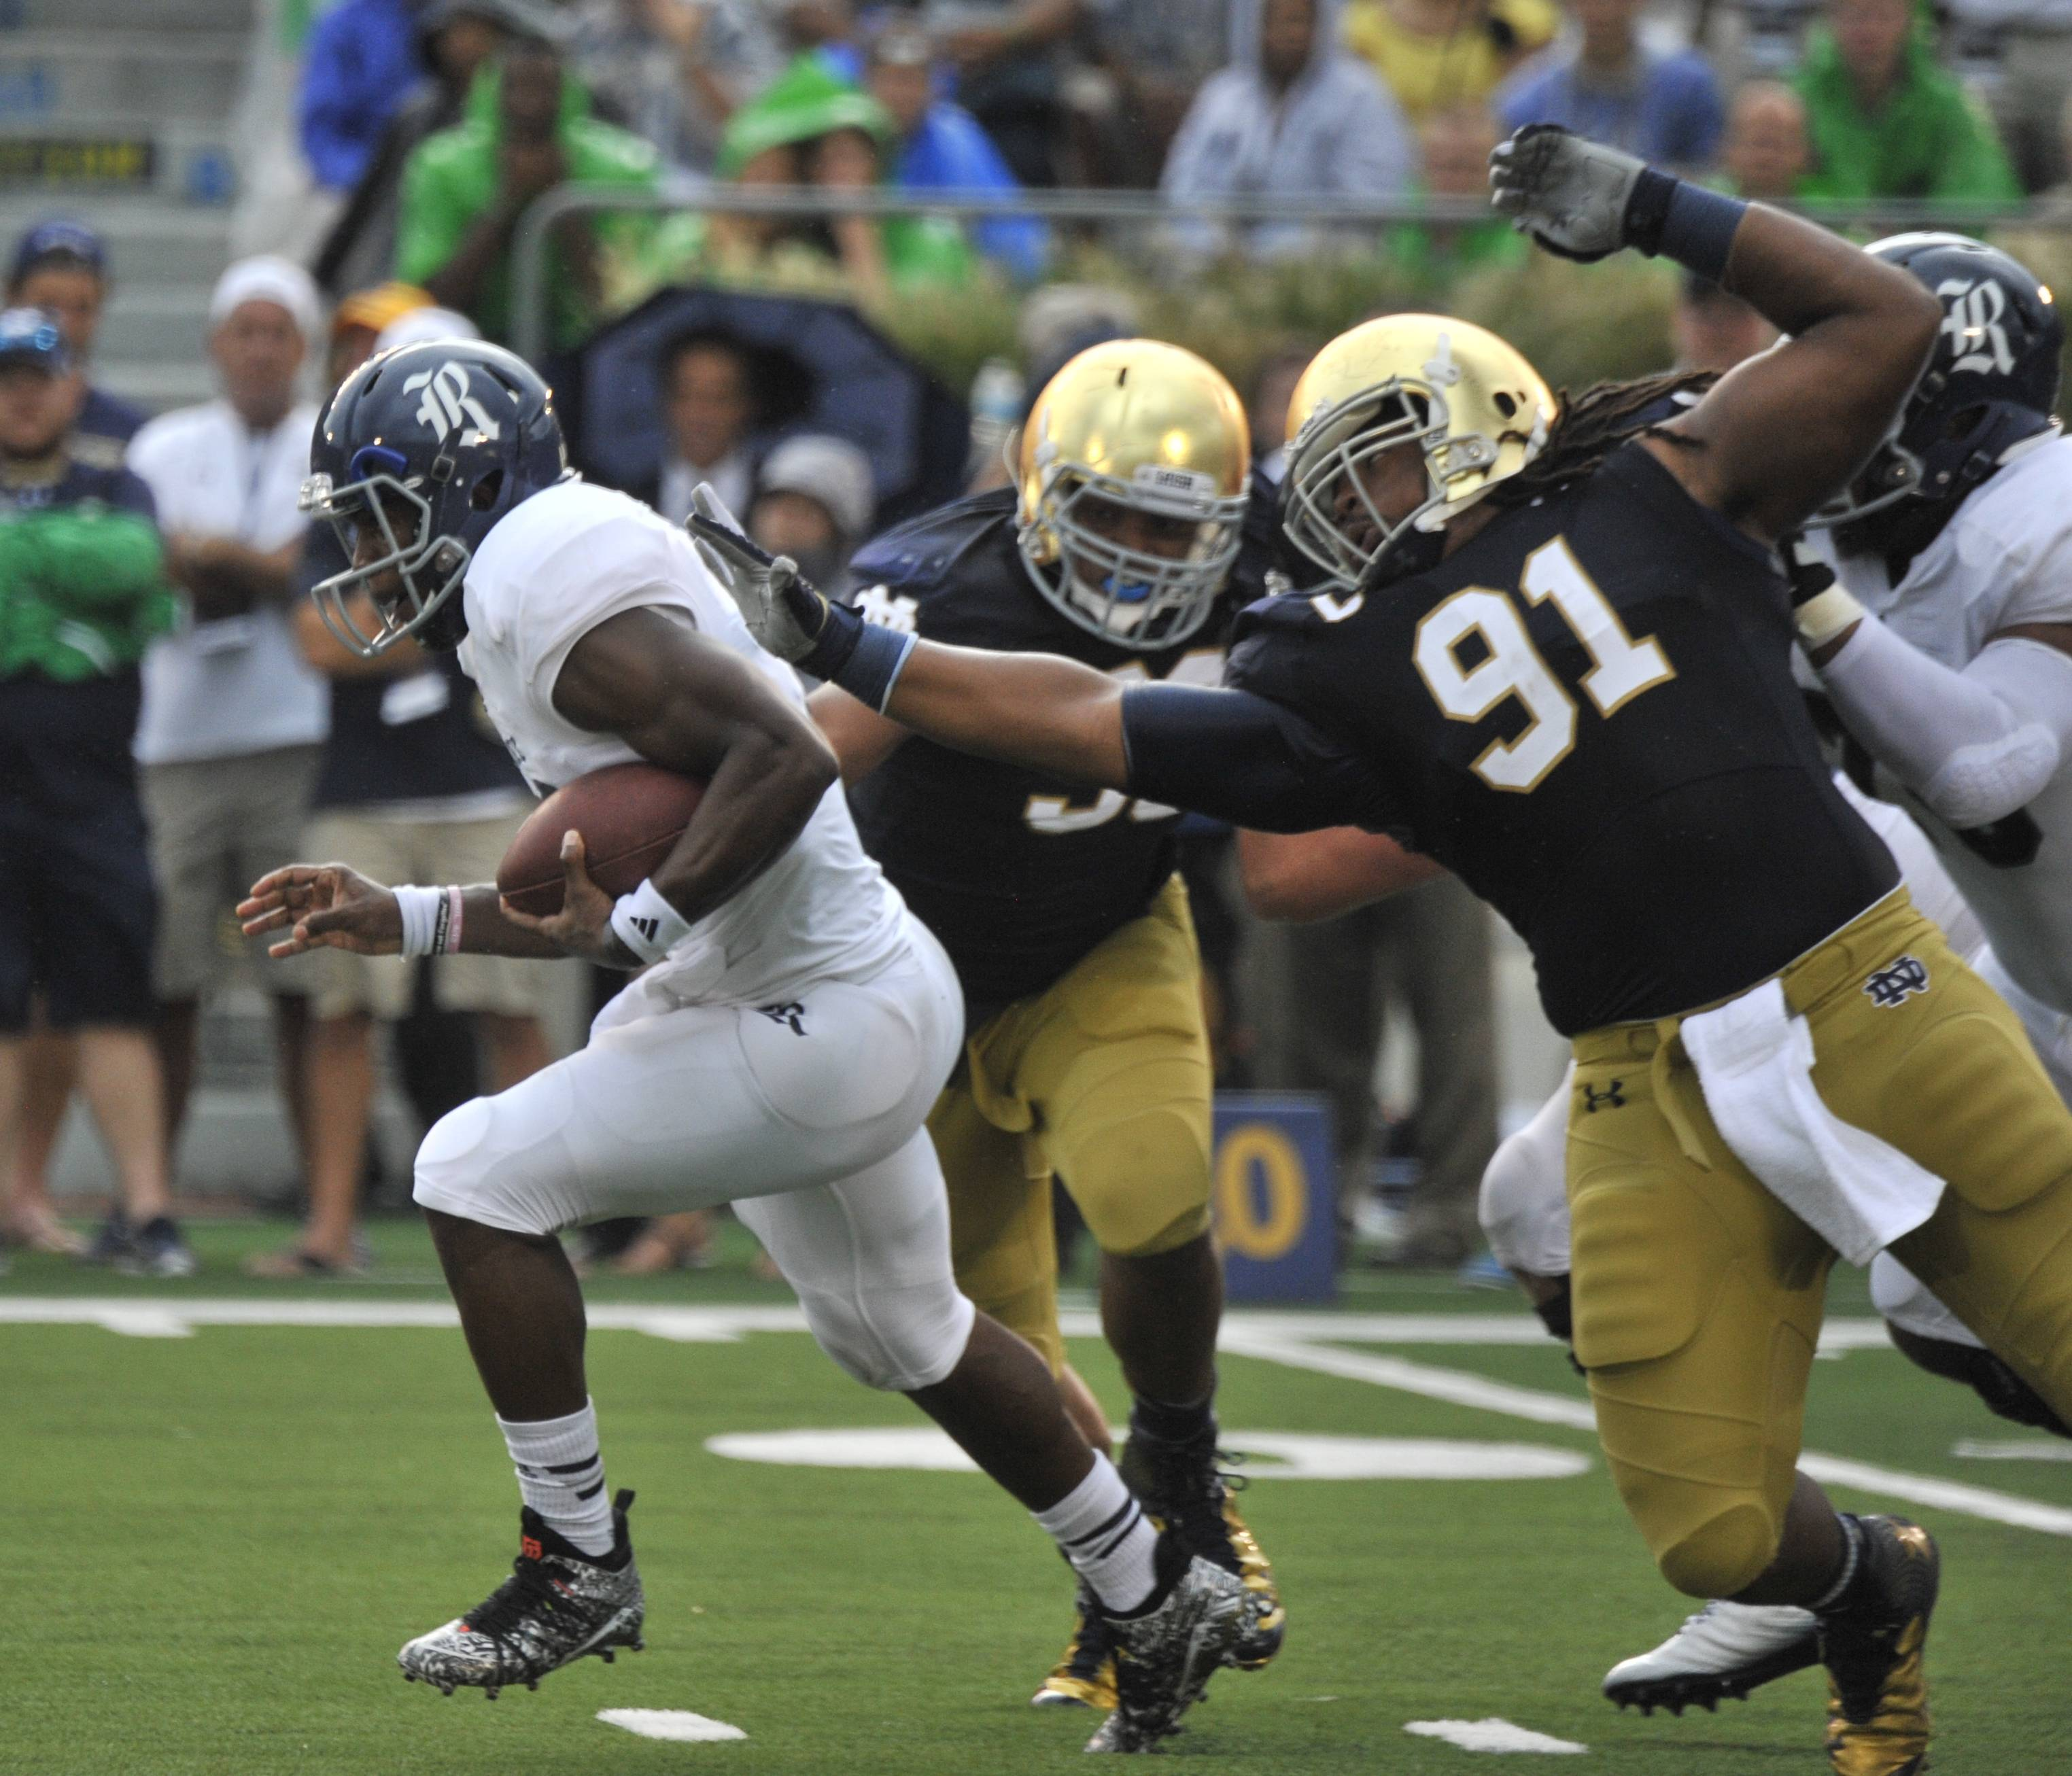 Rice quarterback Driphus Jackson is tackled by Notre Dame defensive end Sheldon Day during an NCAA football game with Notre Dame Saturday, Aug. 30, 2014  in South Bend, Ind.